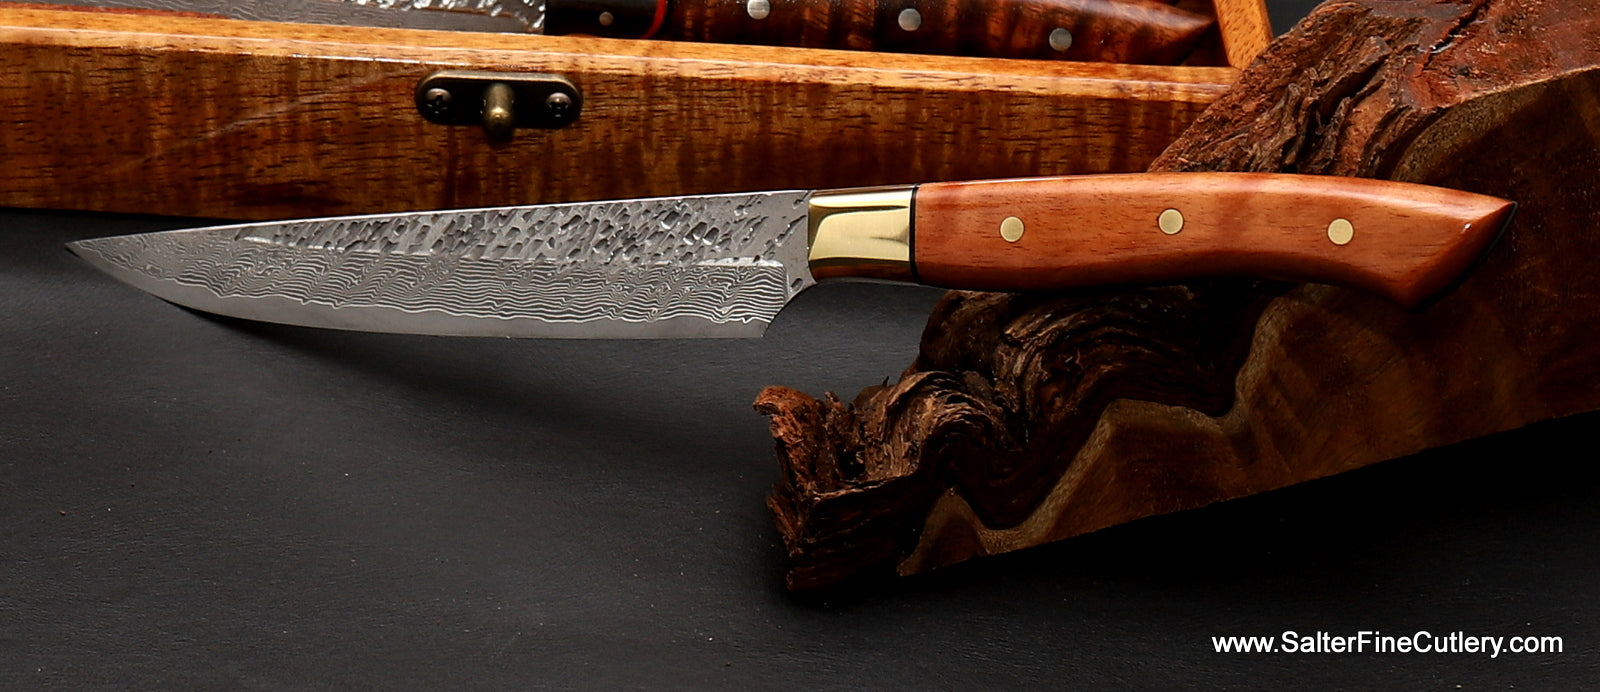 New Salter Fine Cutlery Raptor-series steak knives with Hawaiian lychee handle and brass bolster